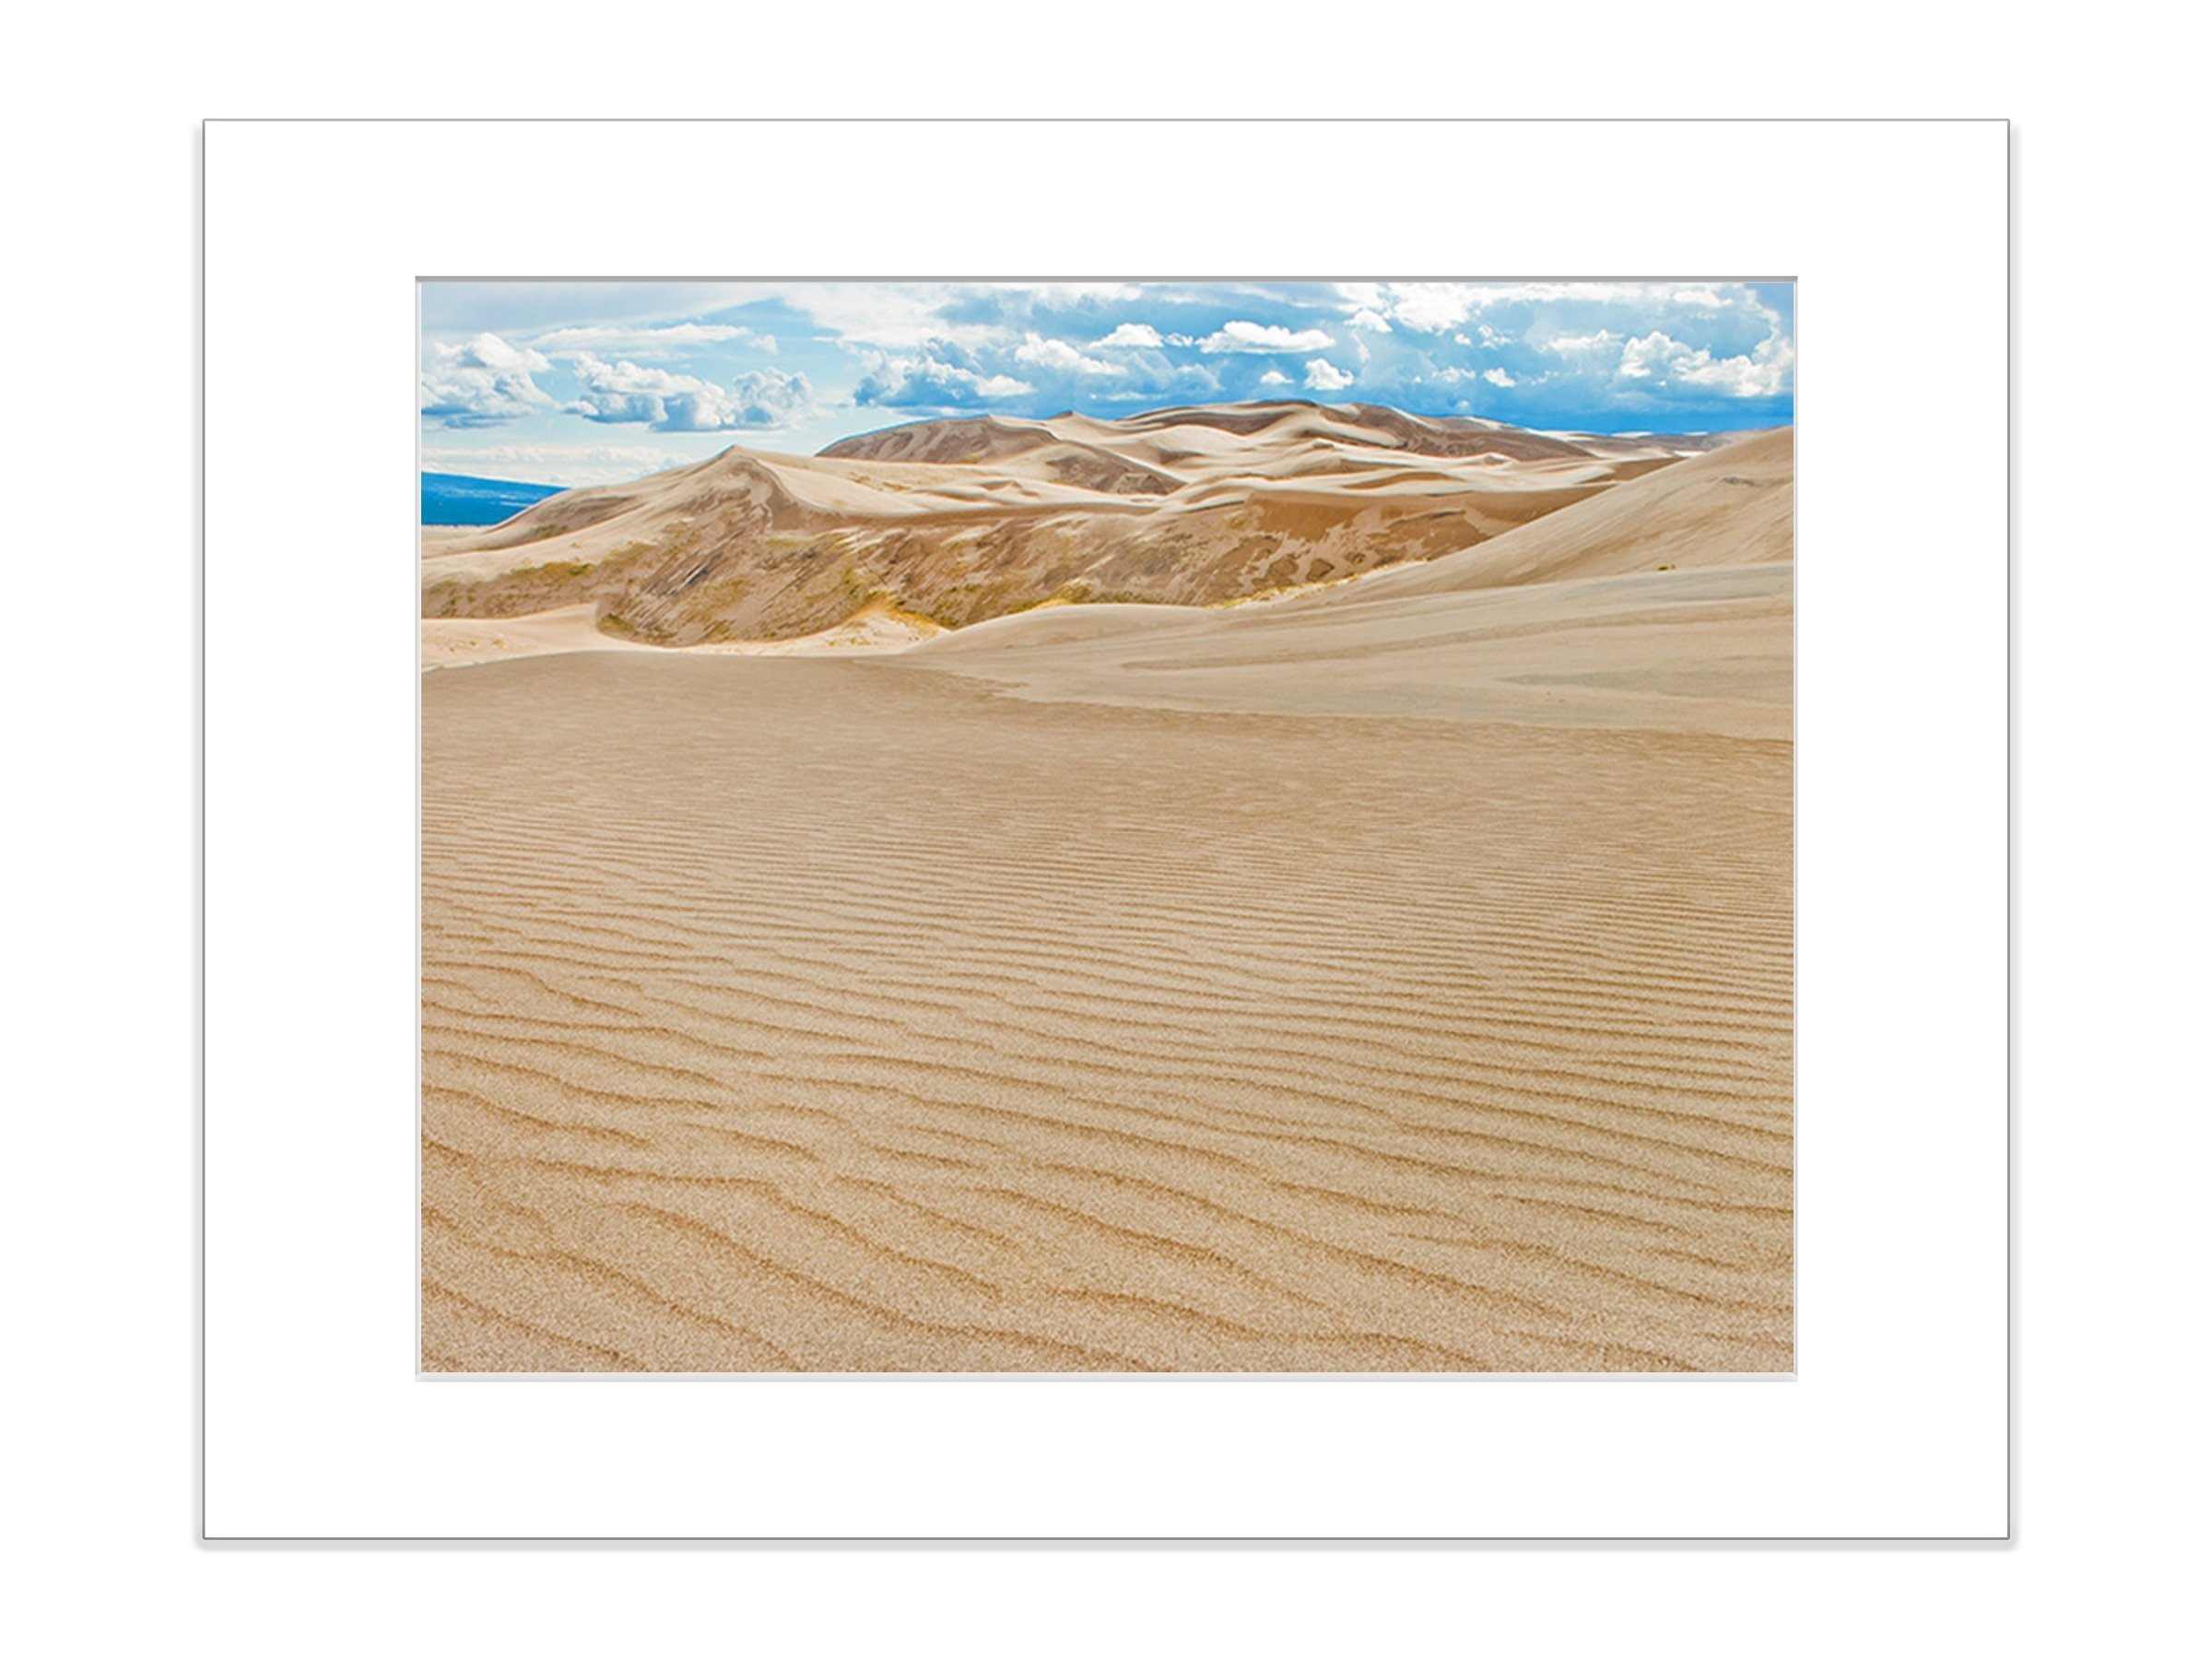 Southwestern Desert Abstract Sand Dunes Wall Decor 8x10 Matted Photo